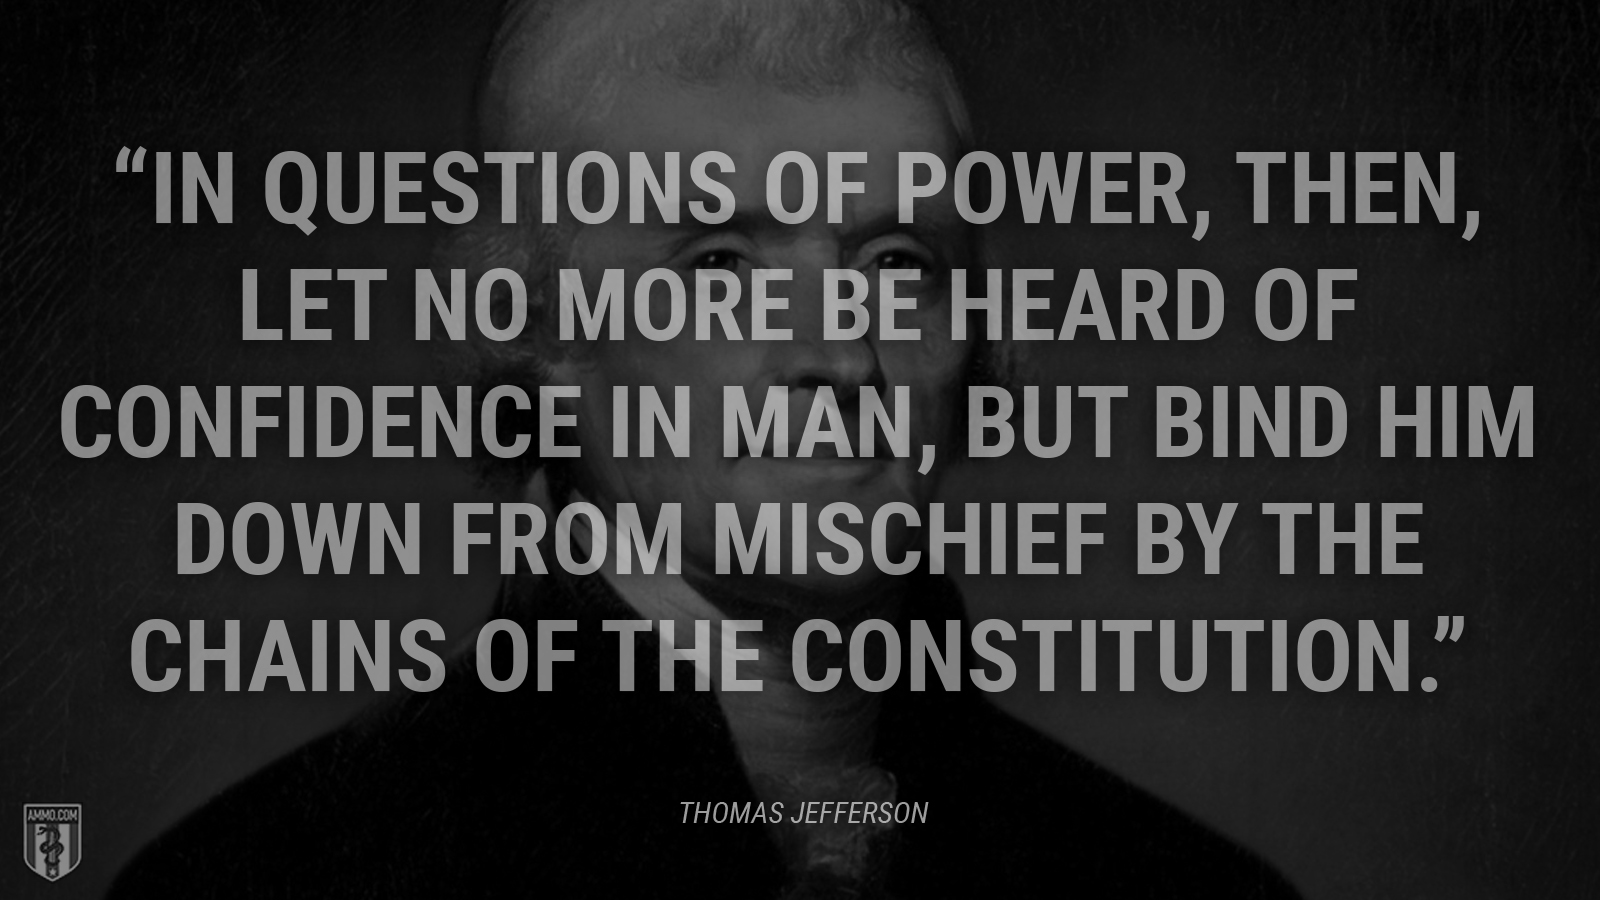 """In questions of power, then, let no more be heard of confidence in man, but bind him down from mischief by the chains of the Constitution."" - Thomas Jefferson"